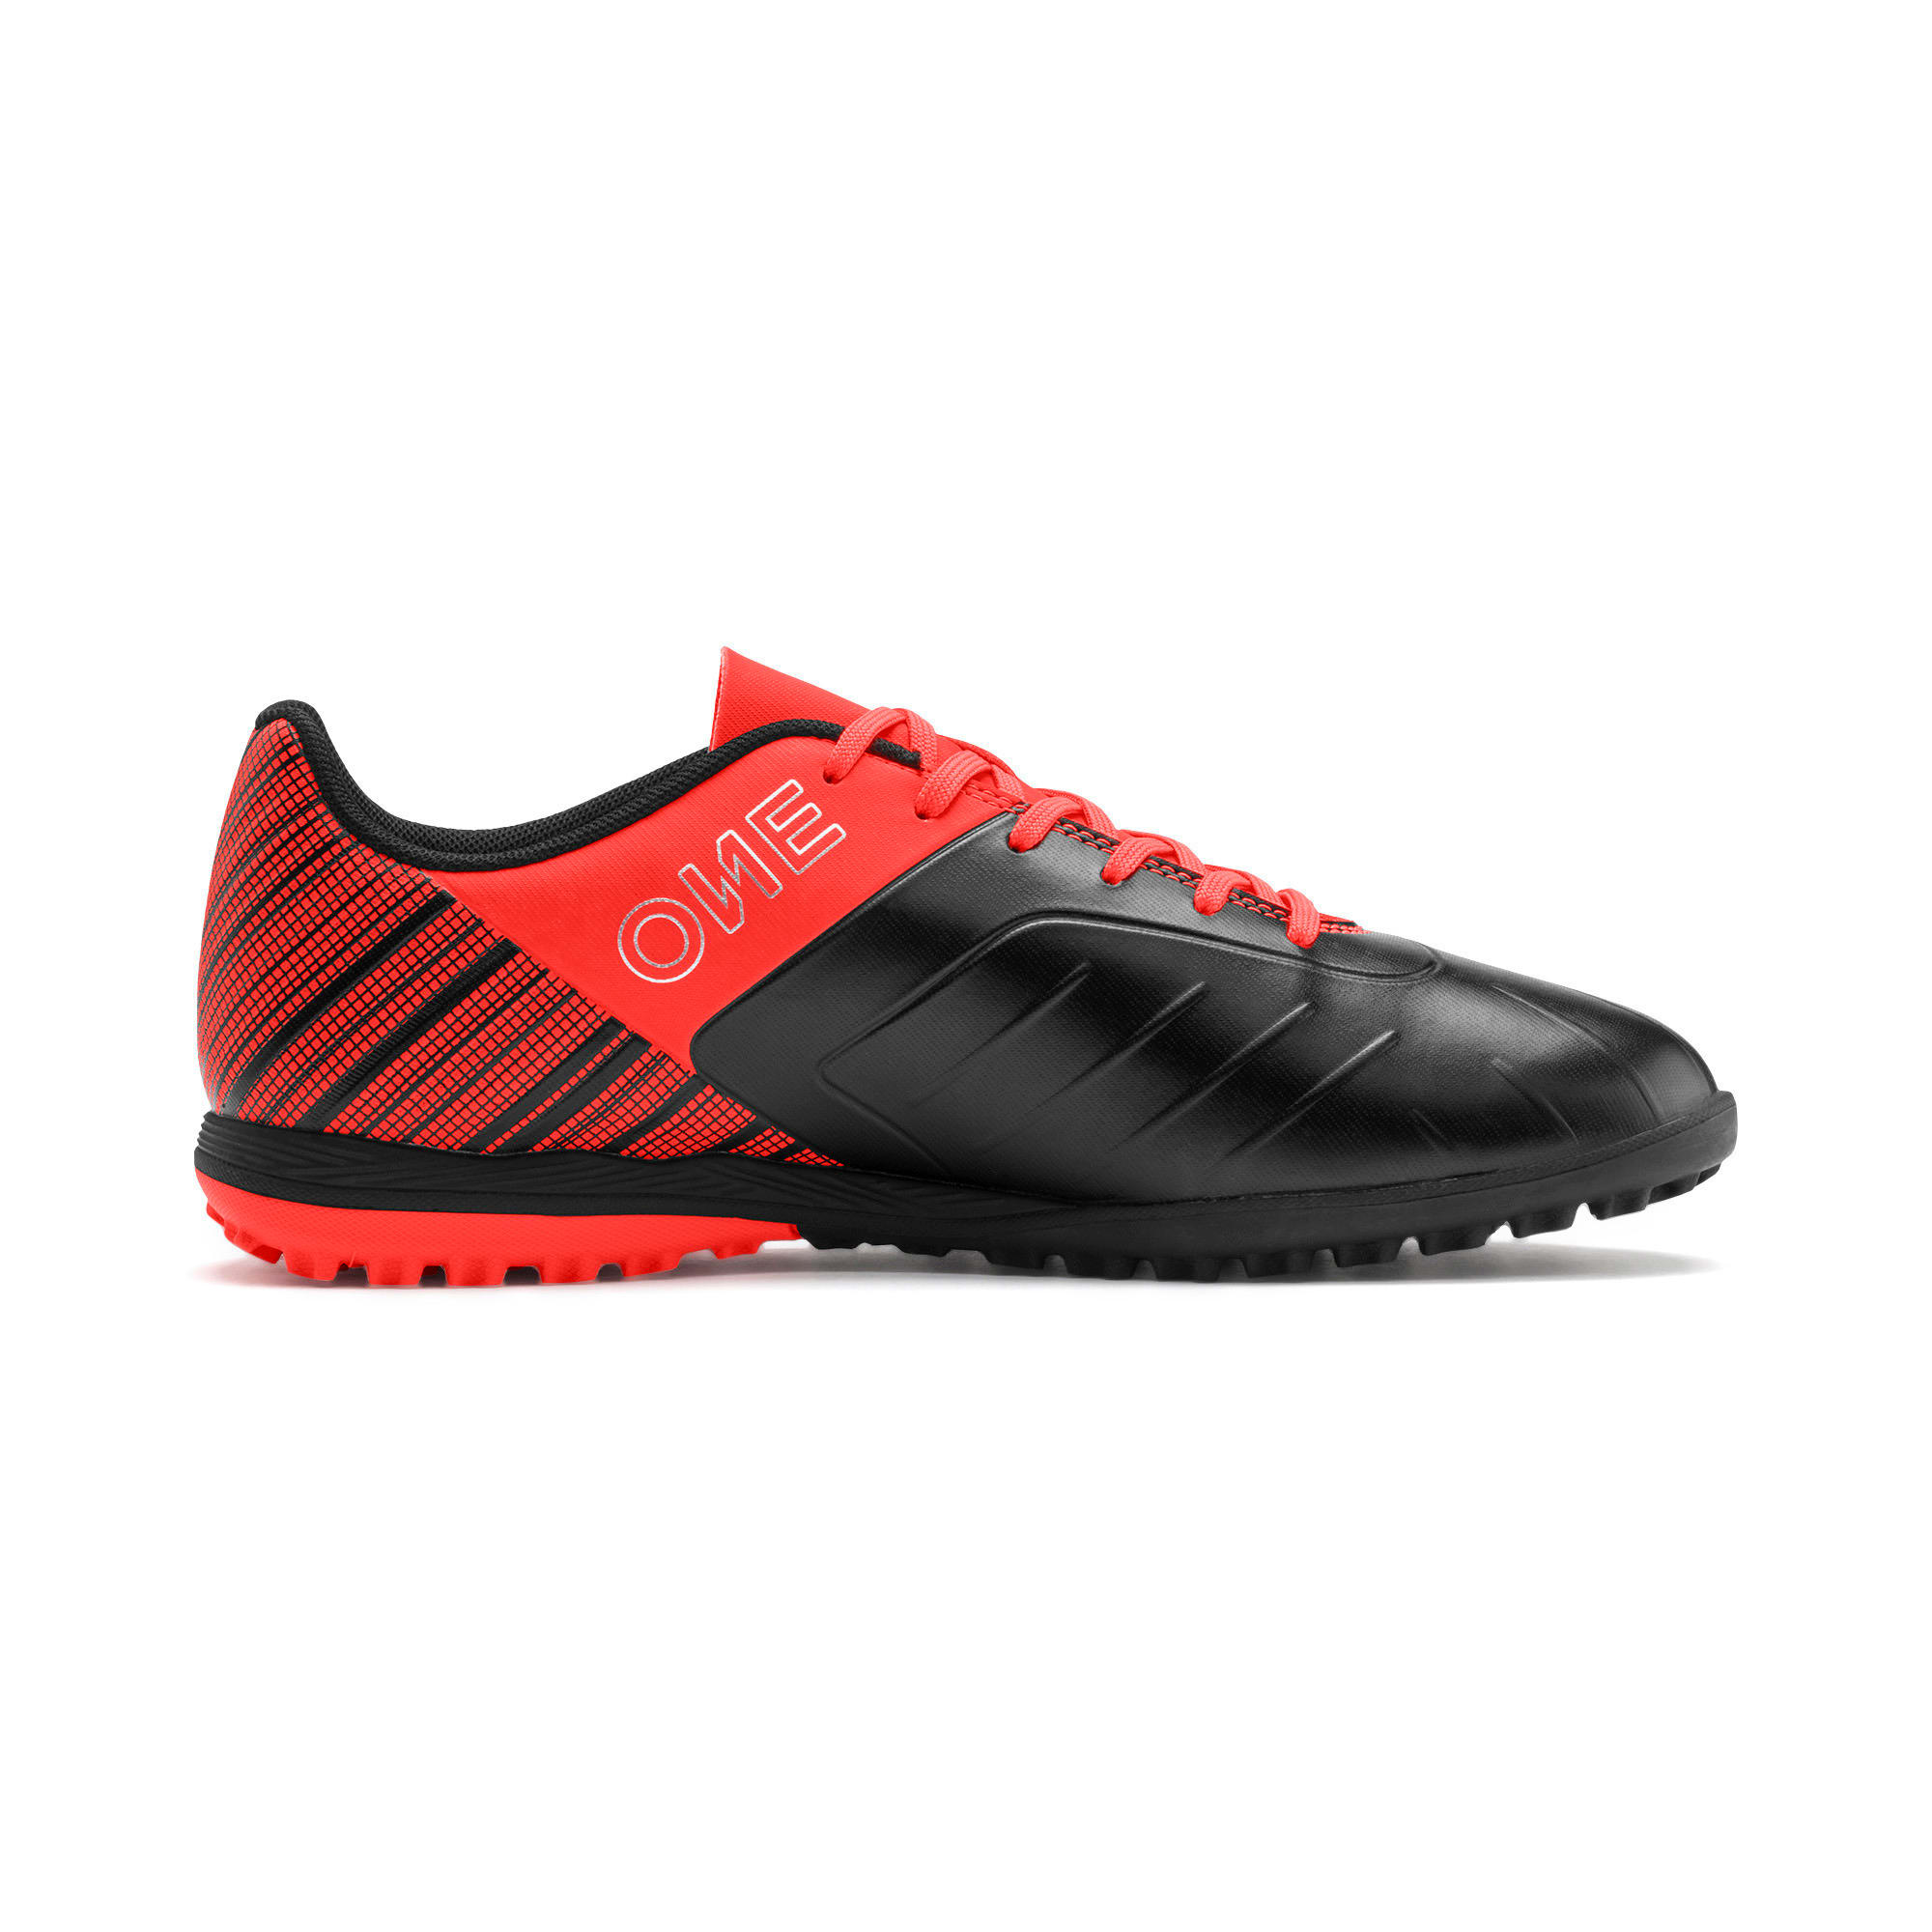 Thumbnail 6 of PUMA ONE 5.4 TT Herren Fußballschuhe, Black-Nrgy Red-Aged Silver, medium